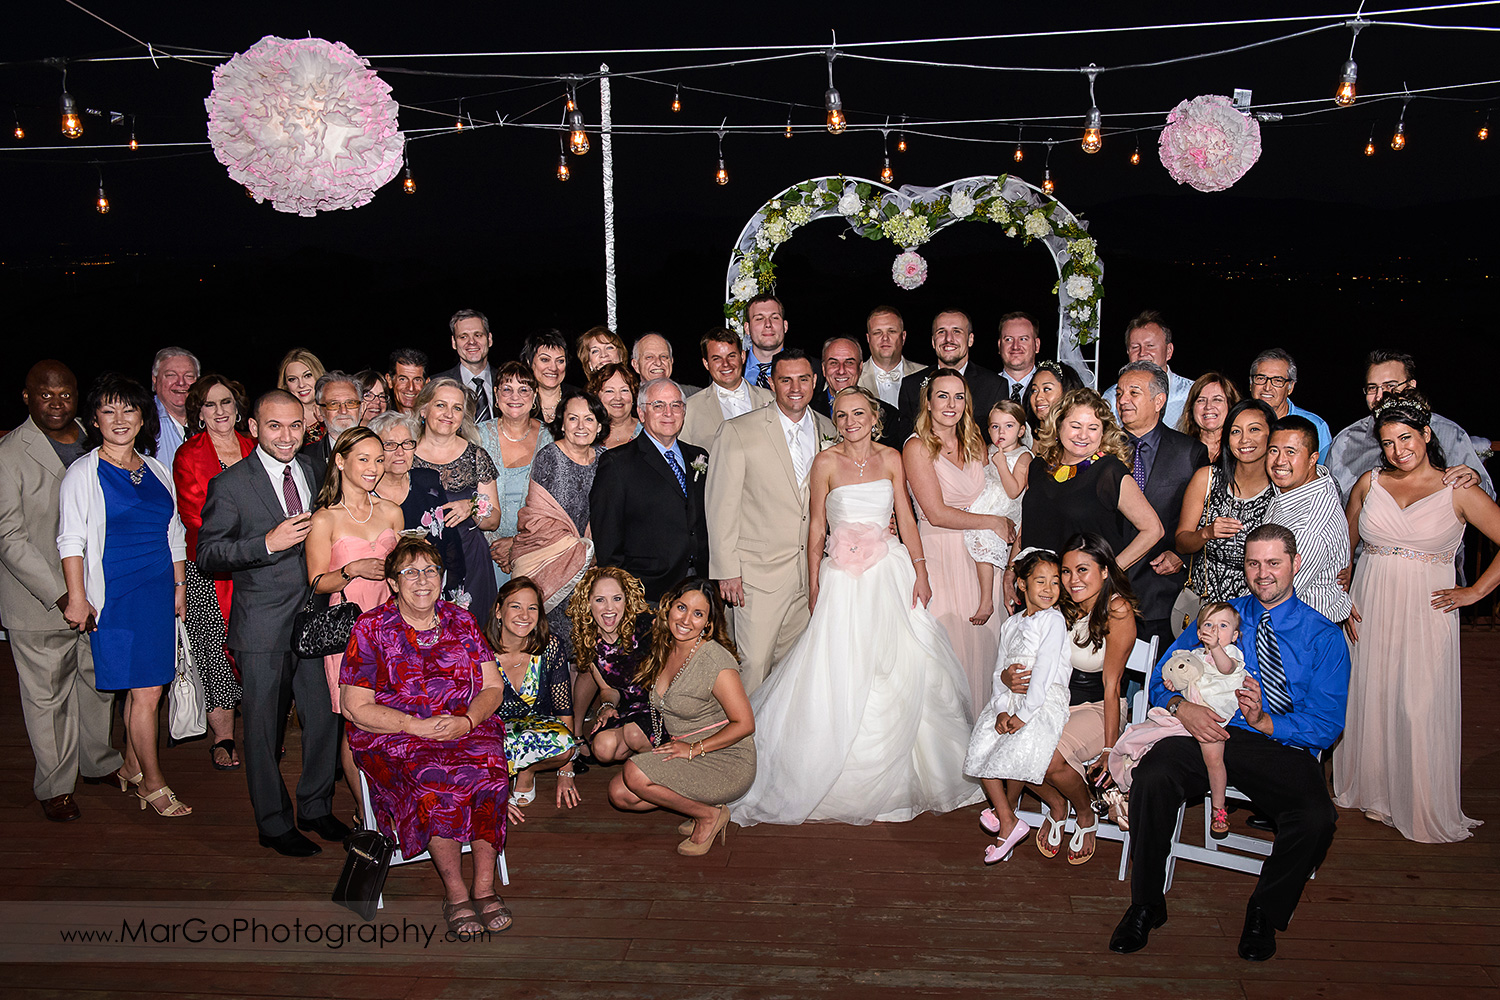 night portrait of wedding party with bride and groom in the middle